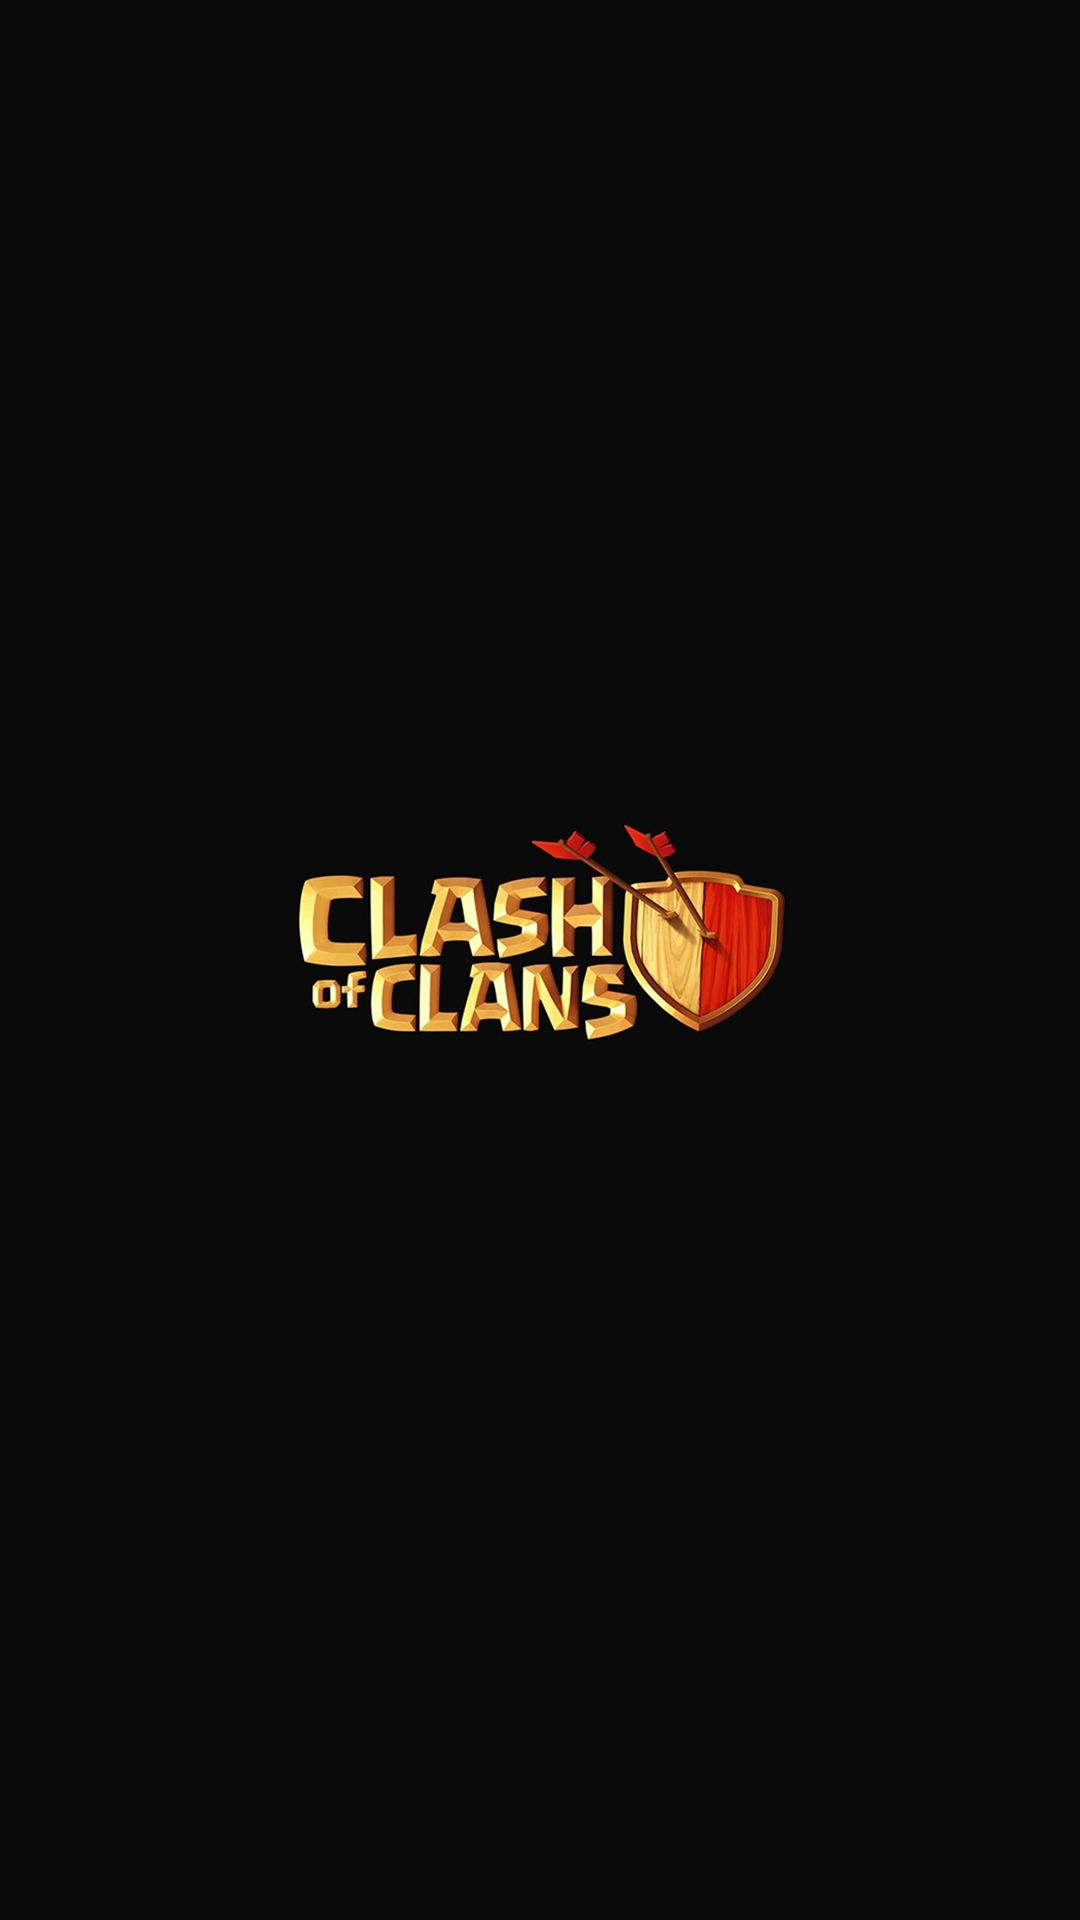 Clash Of Clans Logo Art Dark Game Iphone 8 Wallpapers Clash Of